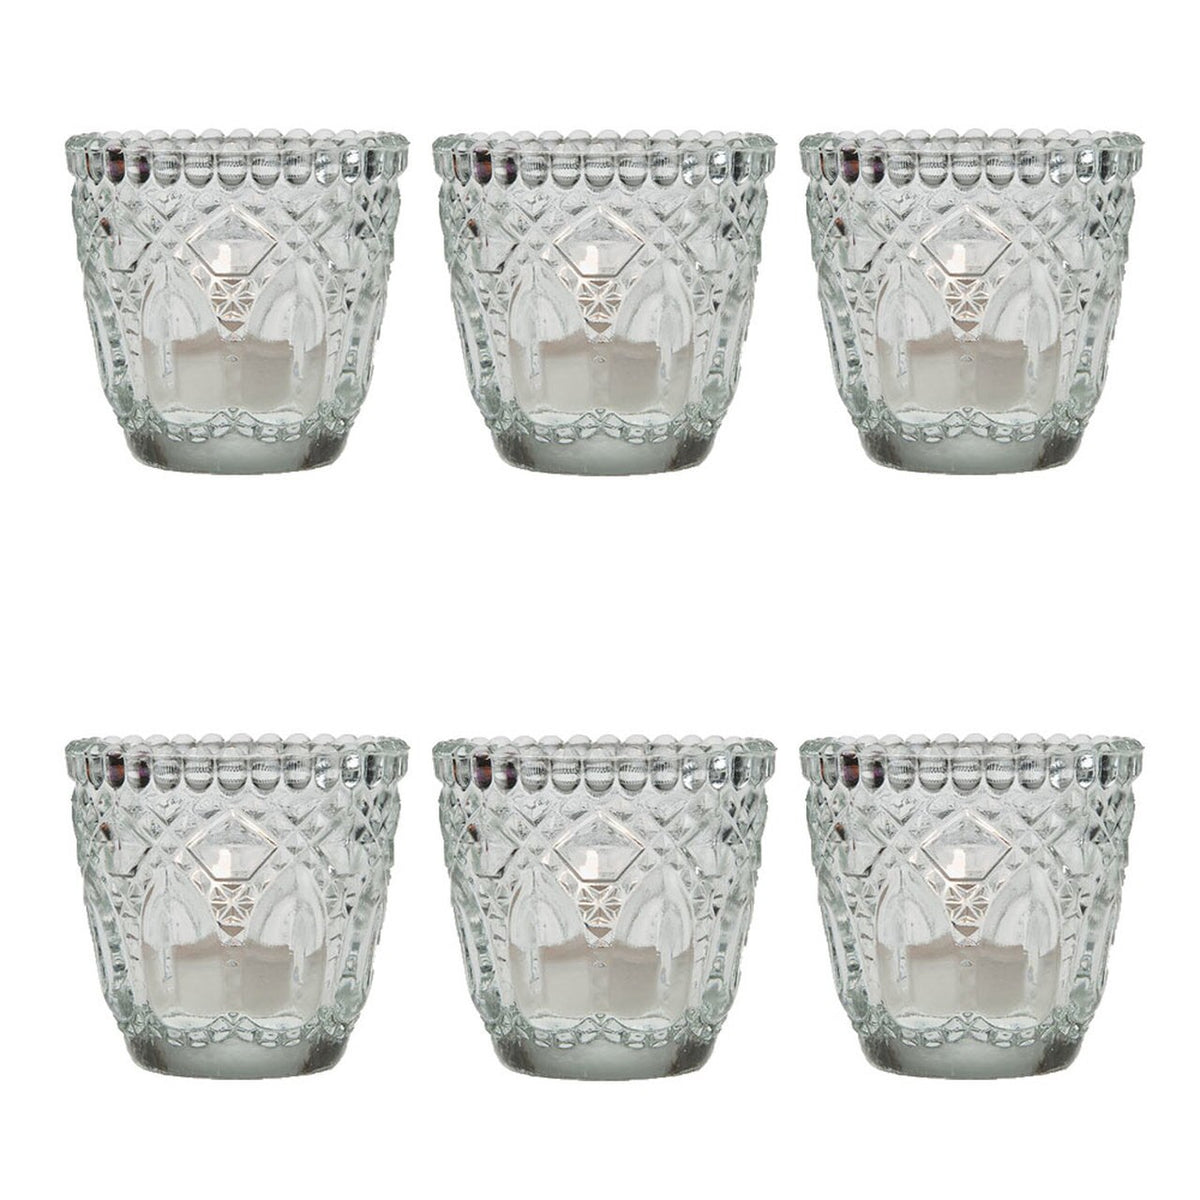 6 Pack | Faceted Vintage Glass Candle Holders (2.75-Inch, Lillian Design, Clear) - Use with Tea Lights - For Home Decor, Parties and Wedding Decorations - PaperLanternStore.com - Paper Lanterns, Decor, Party Lights & More